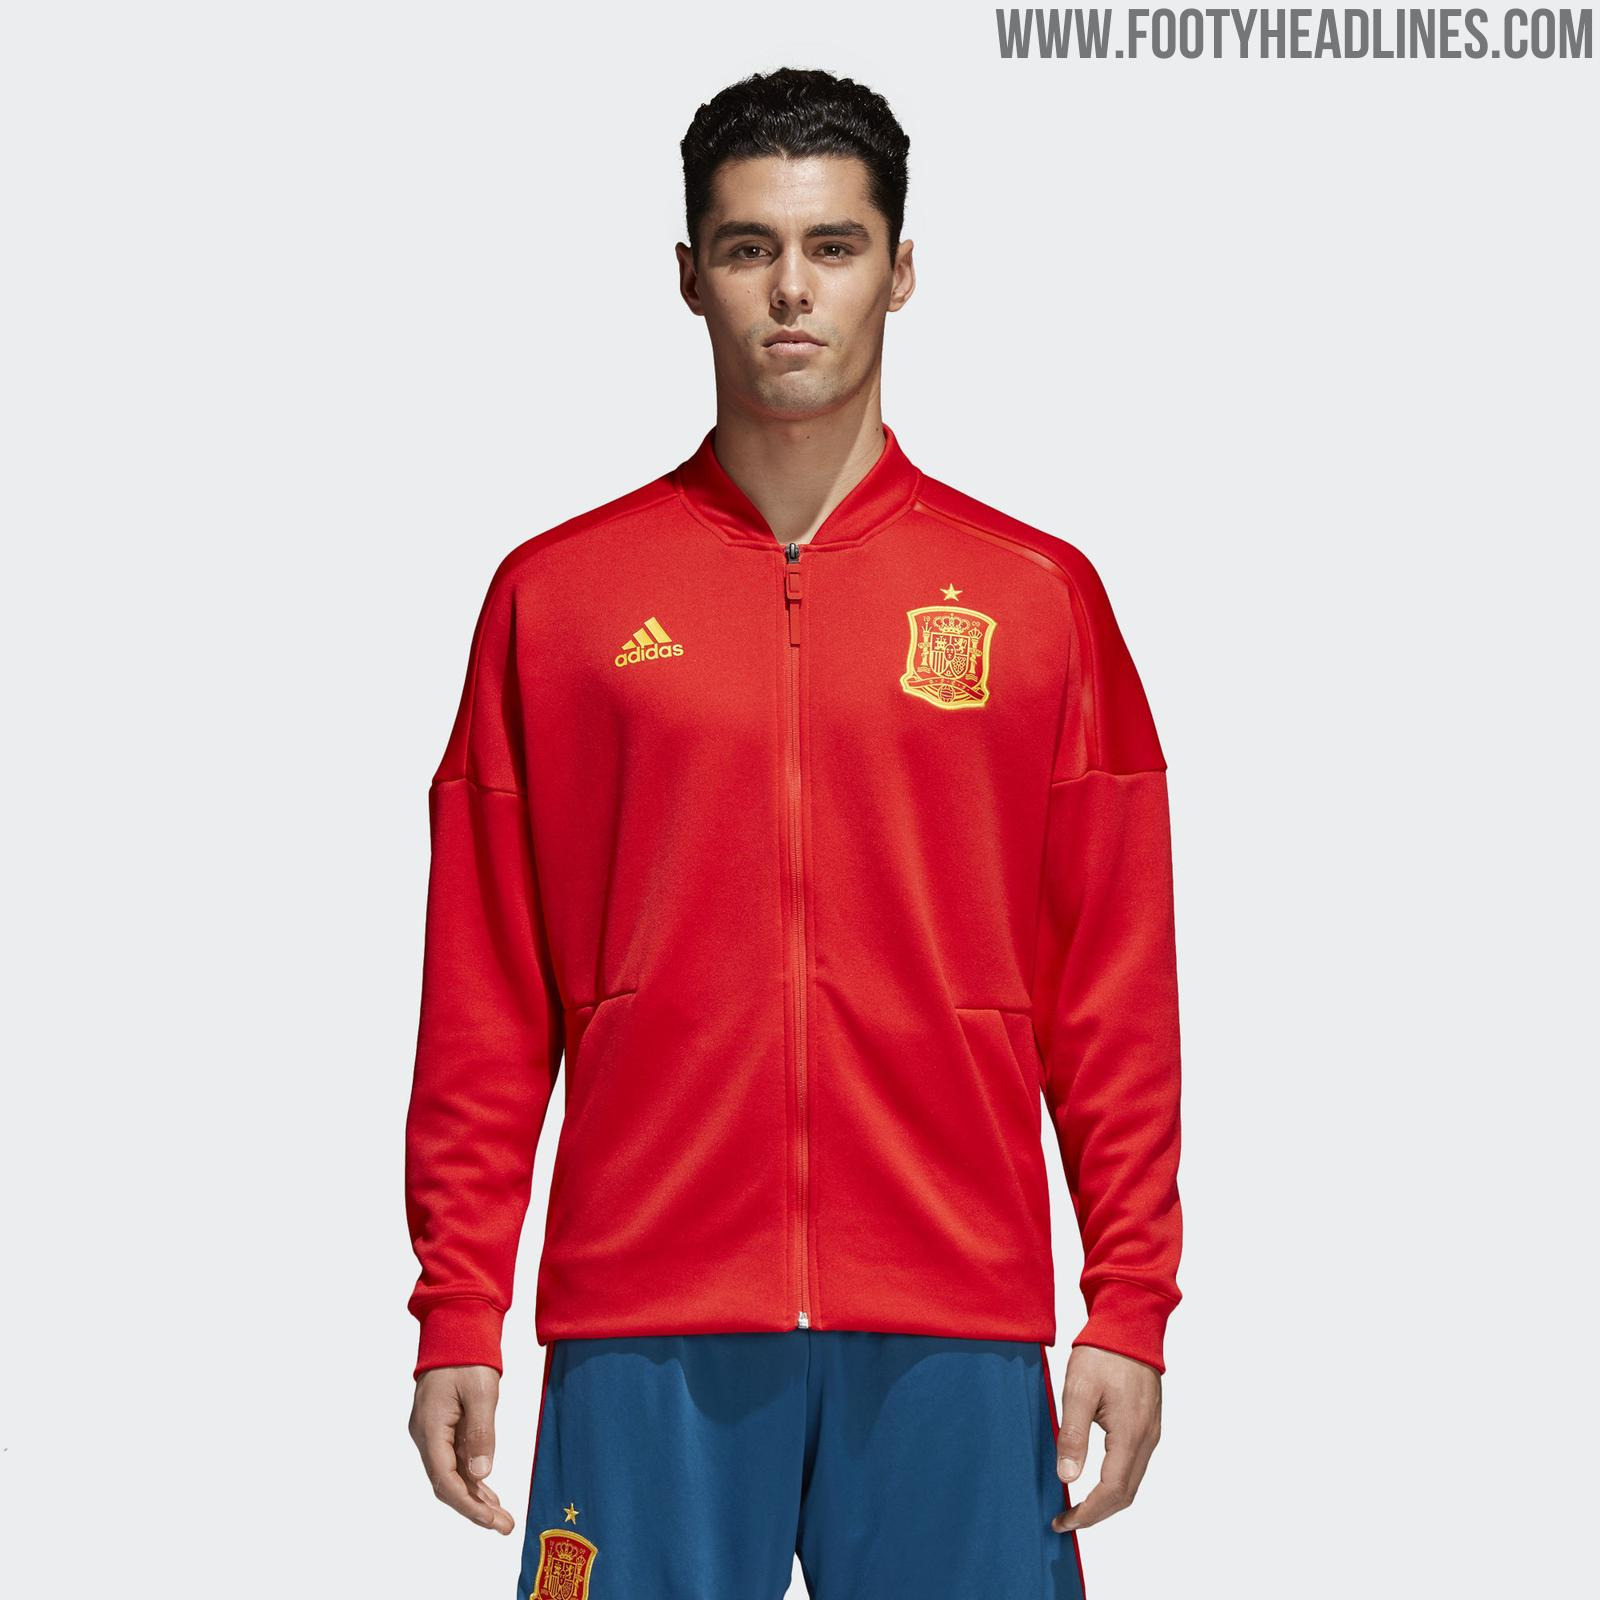 Adidas Spain 2018 World Cup Anthem Jacket eae7f6519